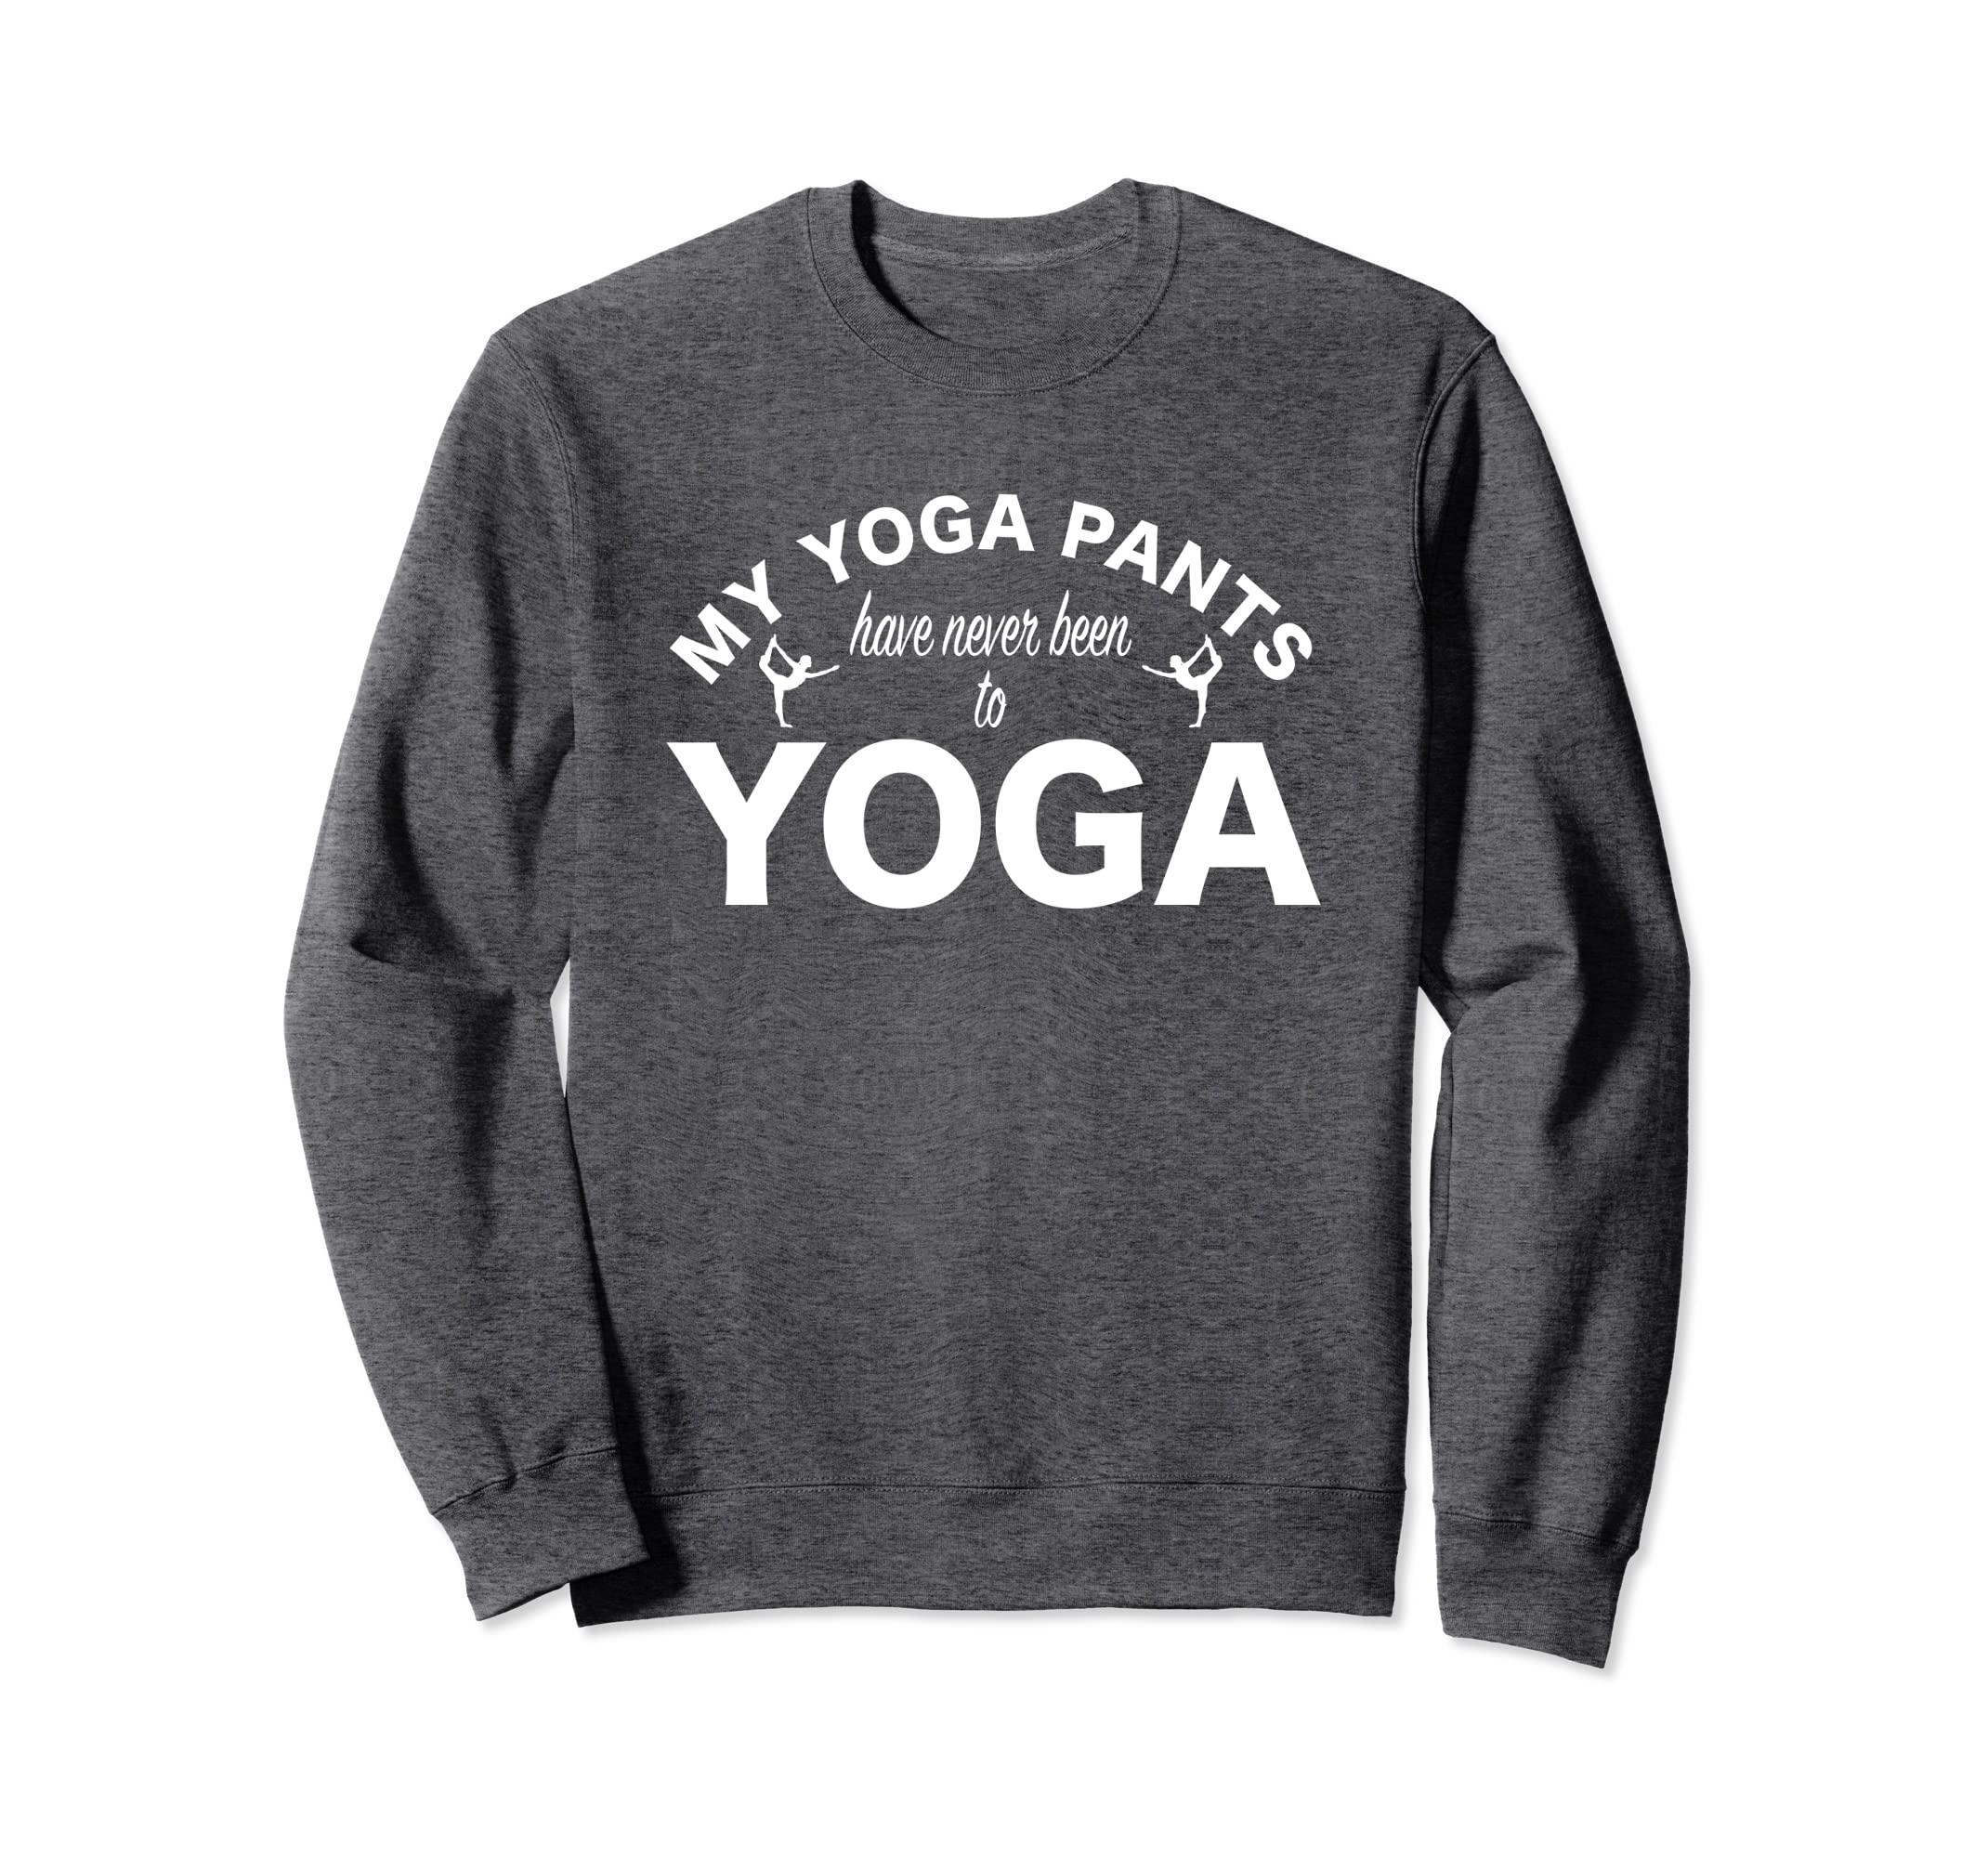 Amazon.com: Funny Yoga Pants Sweatshirt Cute Yoga Shirt ...